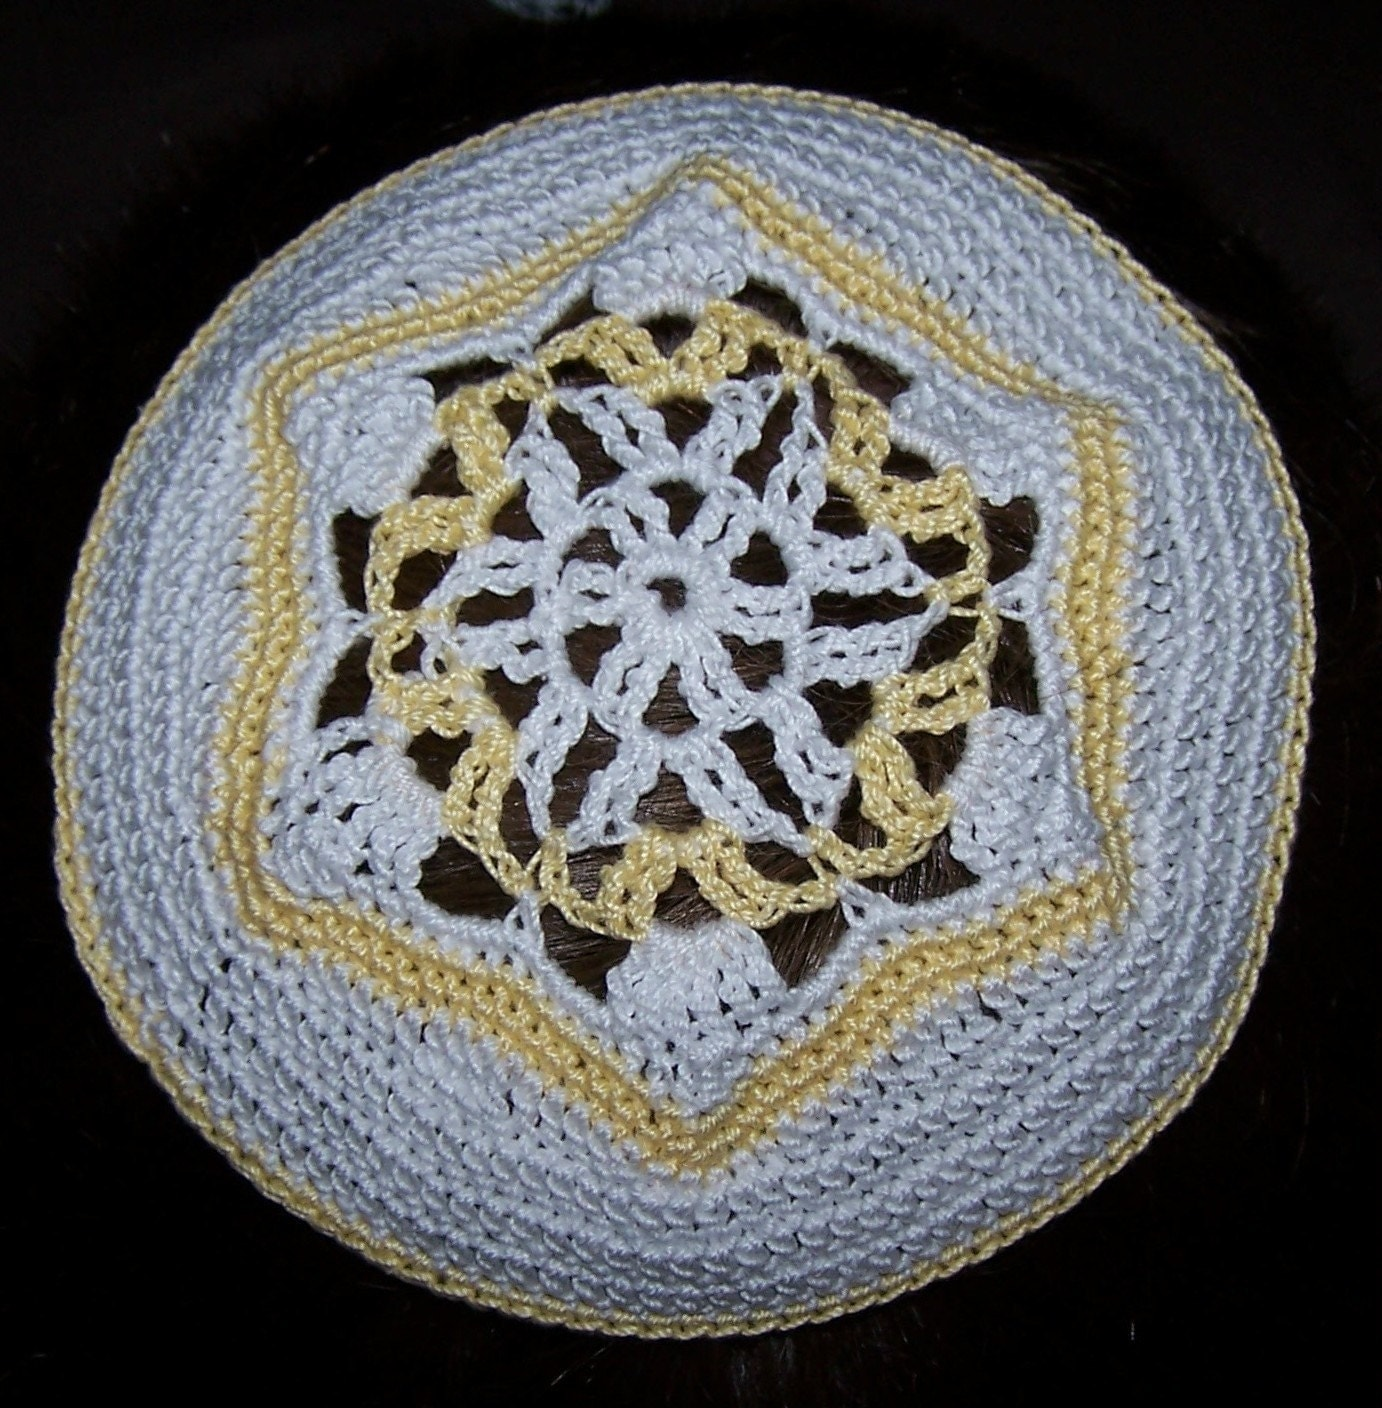 Knitted Floor Cushion Pattern : Bead pattern or directions or instruction kippah. kippax ashtree open day